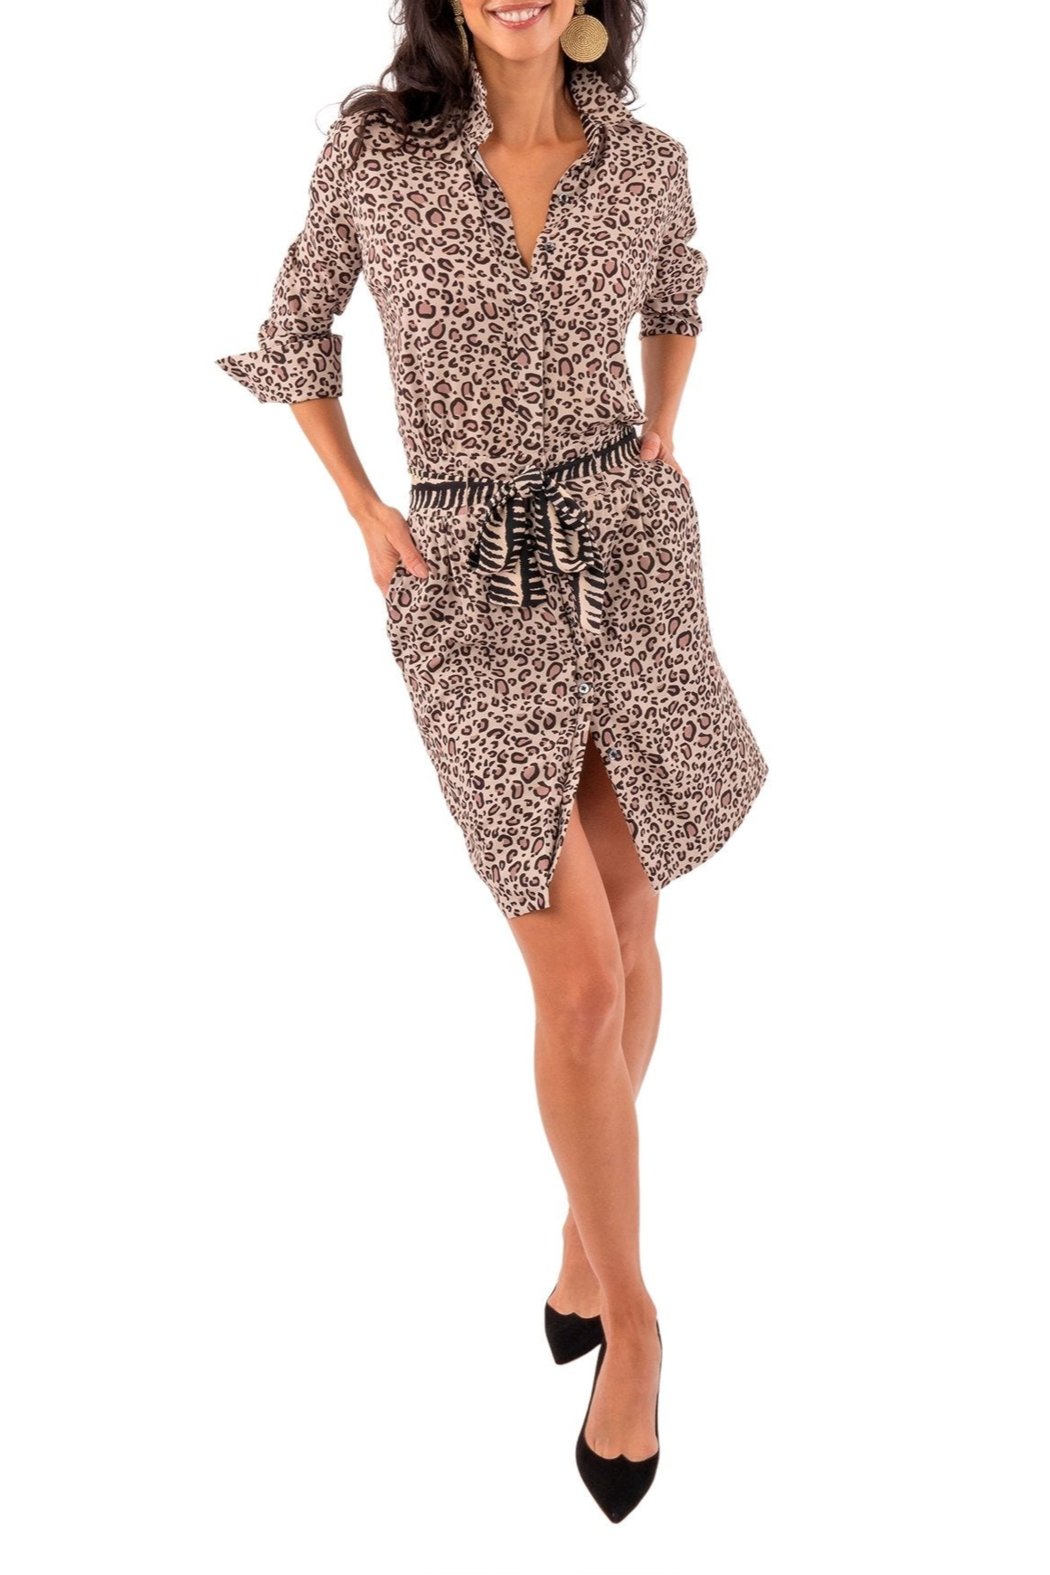 Gretchen Scott Breezy Blouson Dress - Back Cropped Image